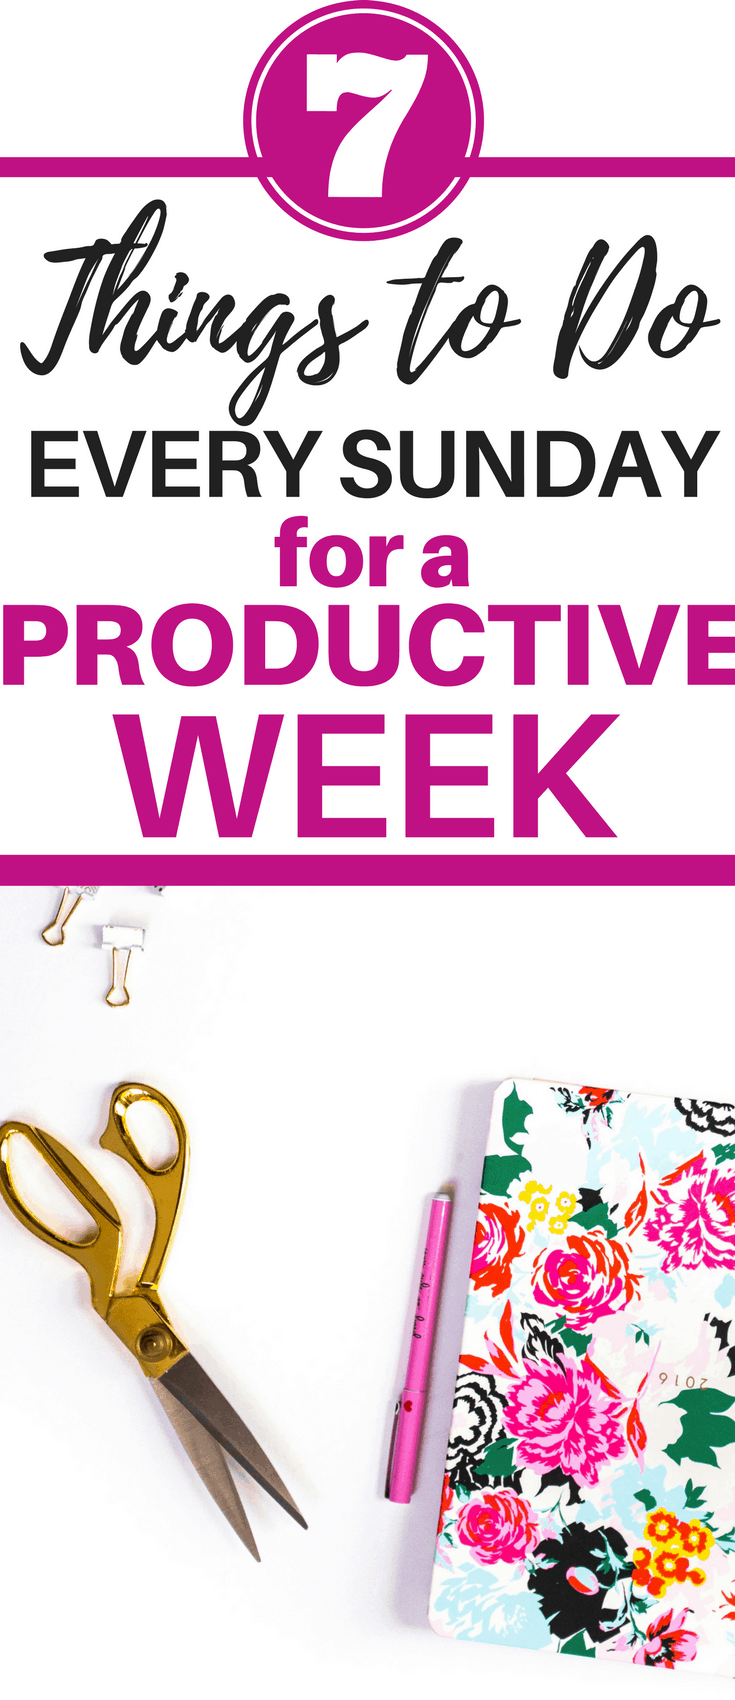 These tips will make you successful, productive and keep you motivated all week. Do this every Sunday so you can reach your goals and cross off that do list like the girl boss you are.